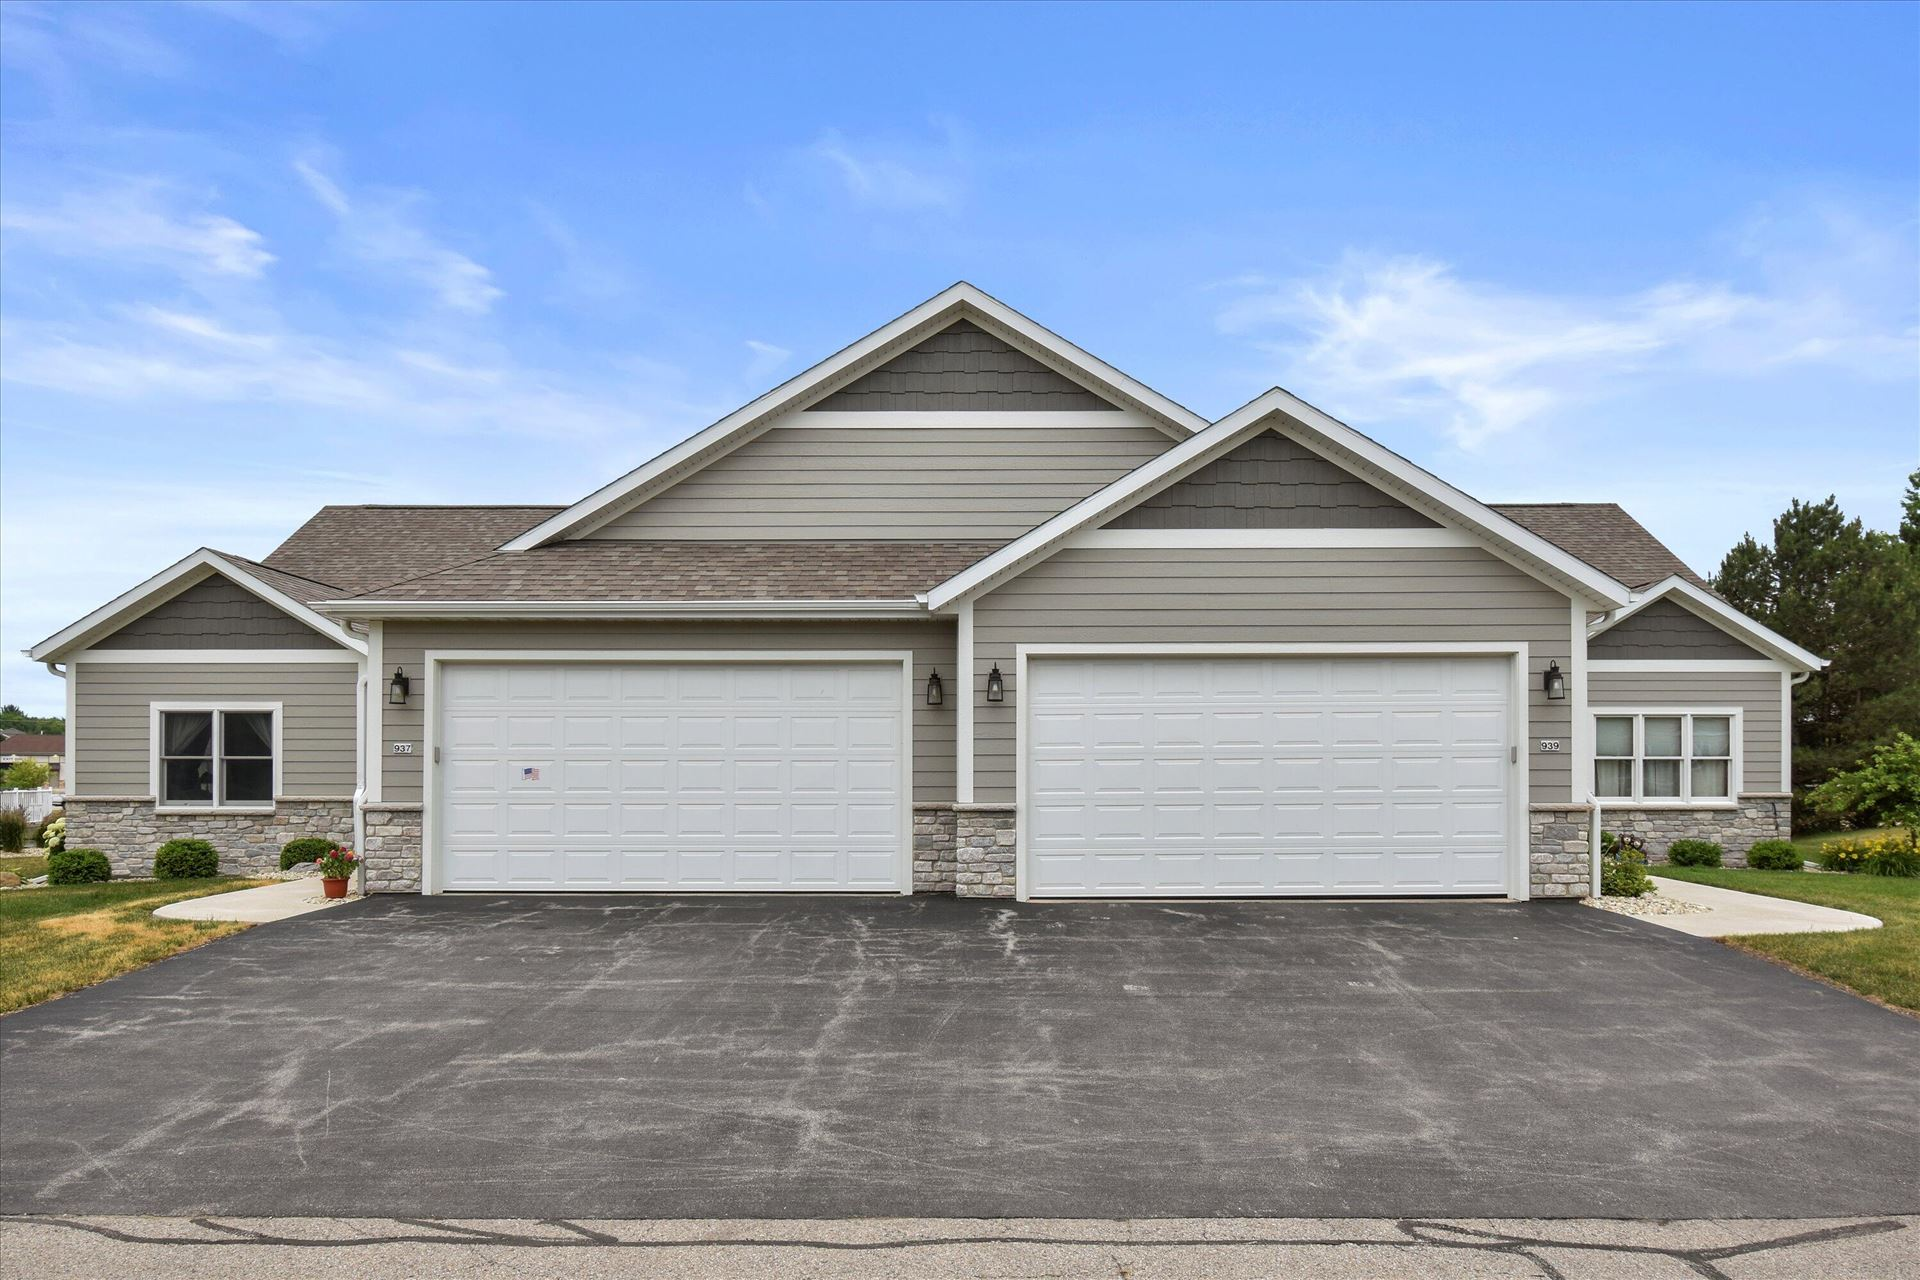 937 Spy Glass Hill, Waterford, WI 53185 - #: 1748901